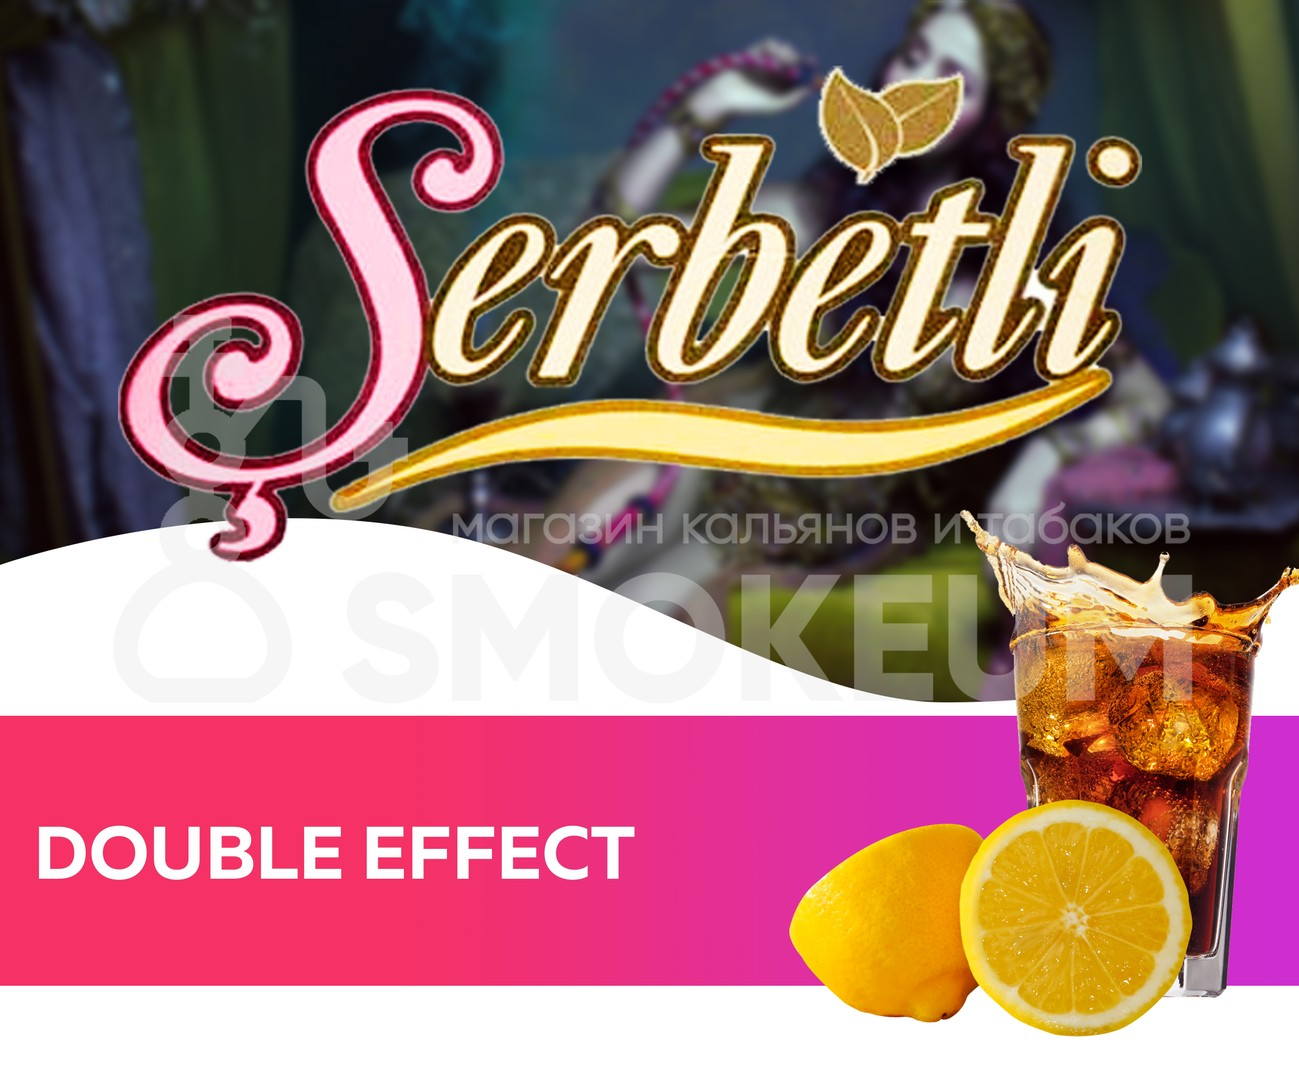 Табак Serbetli - Double Effect (Пепси с лимоном) 50 гр